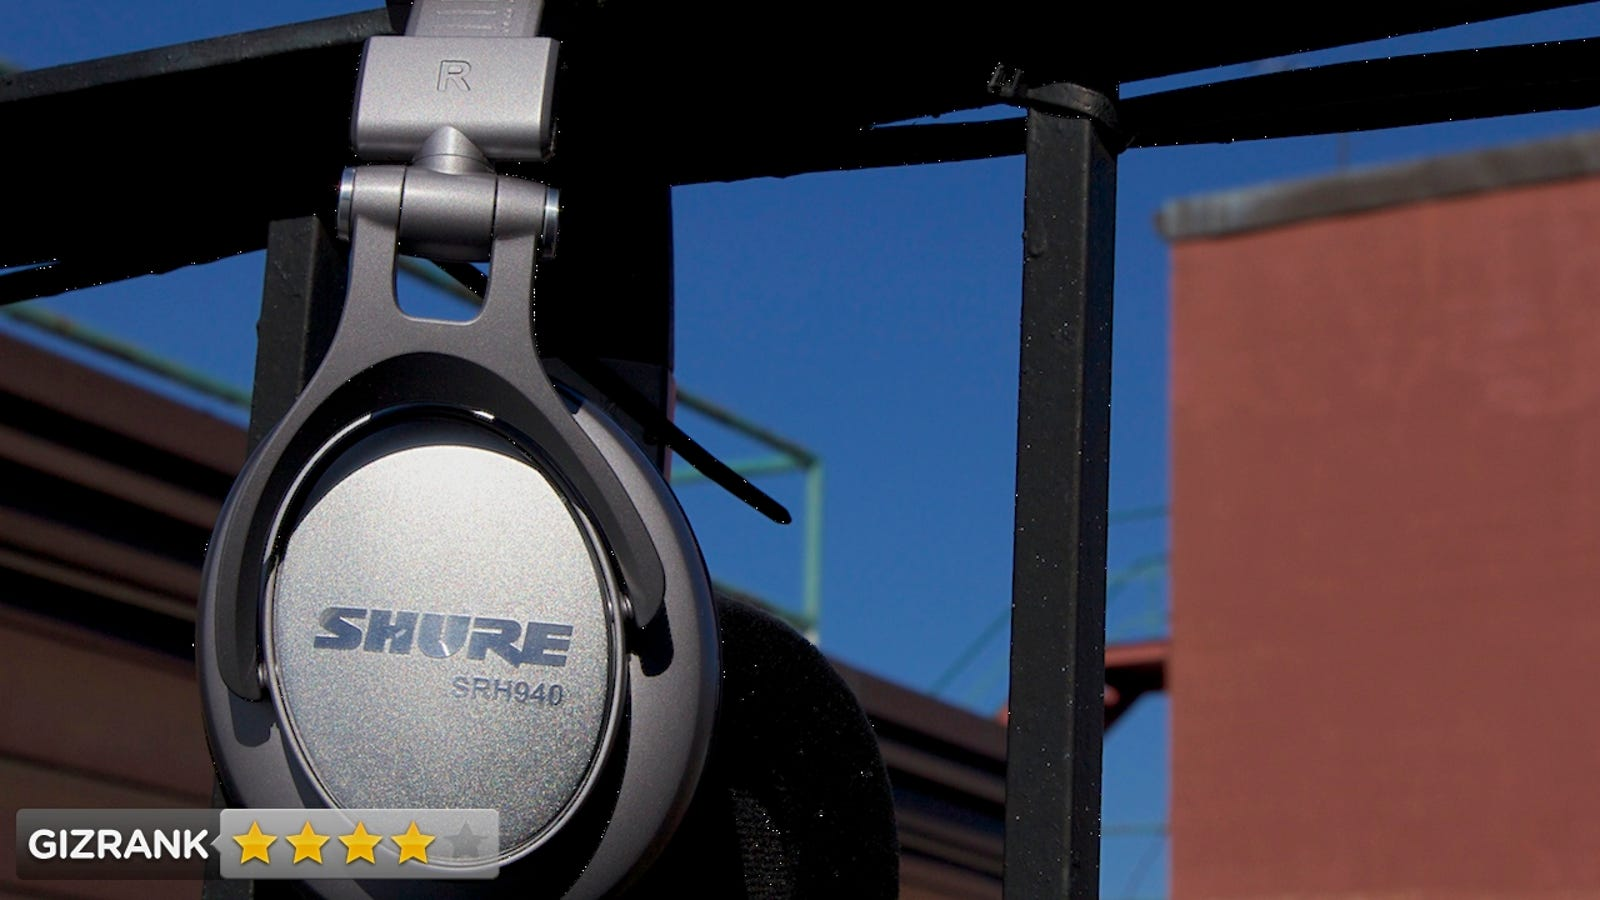 earphone jack extension - Shure SRH-940 Headphones Lightning Review: Serious Bang for the Buck